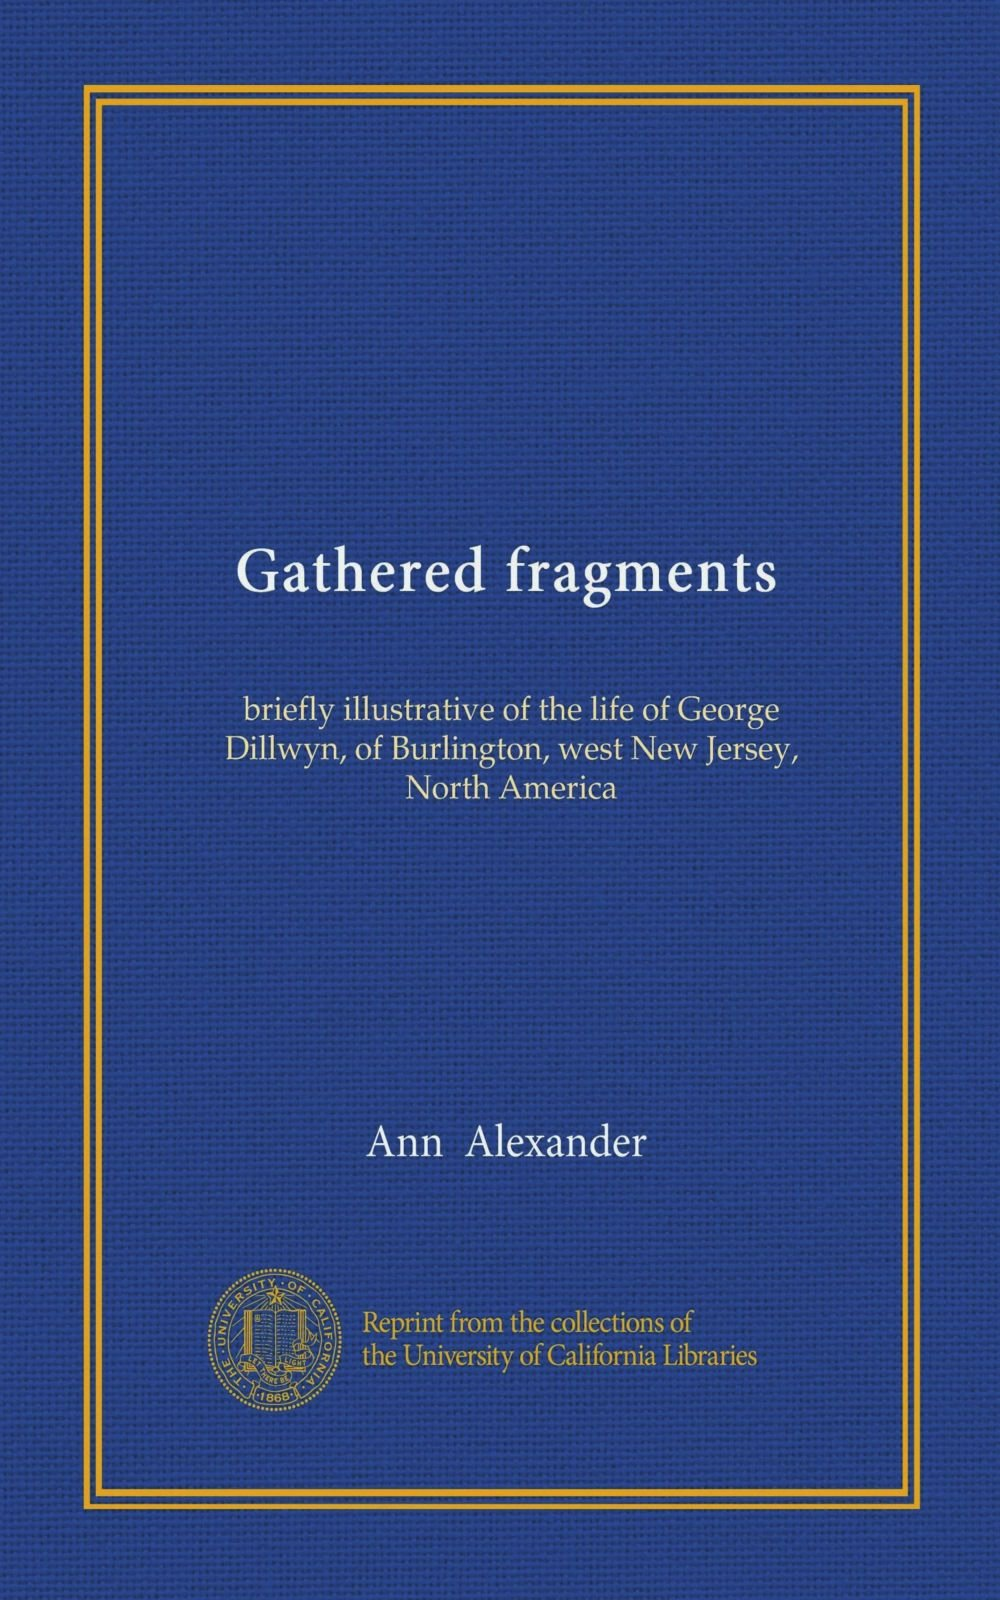 Download Gathered fragments: briefly illustrative of the life of George Dillwyn, of Burlington, west New Jersey, North America PDF